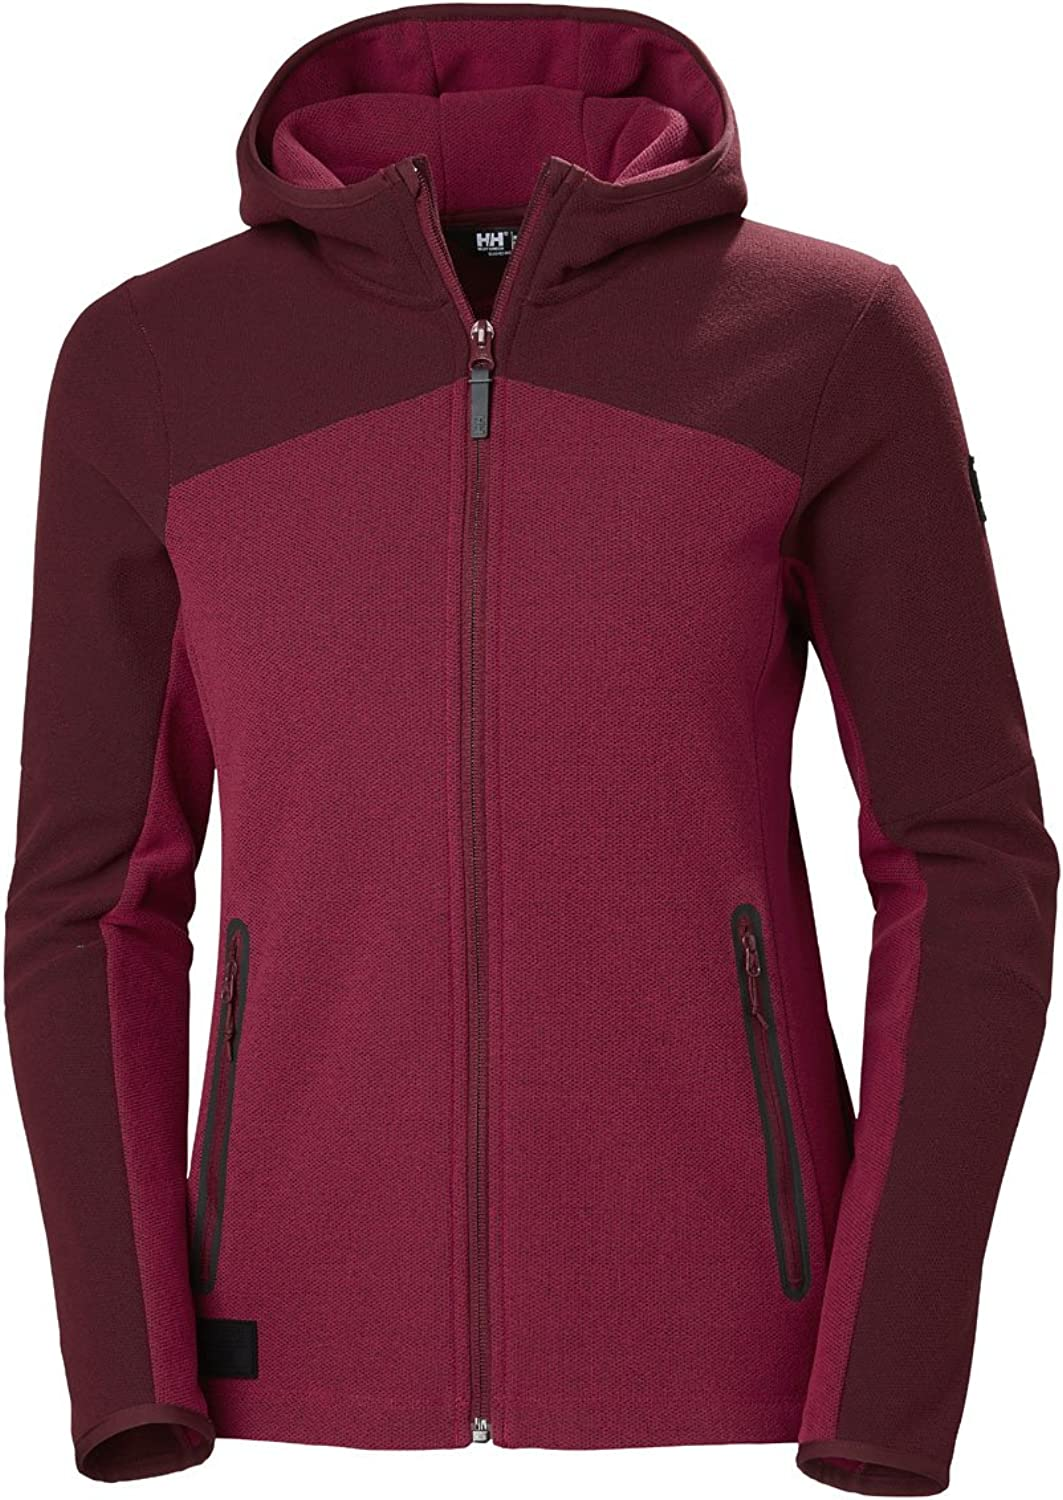 Helly Hansen Women's Vanir Fleece Jacket